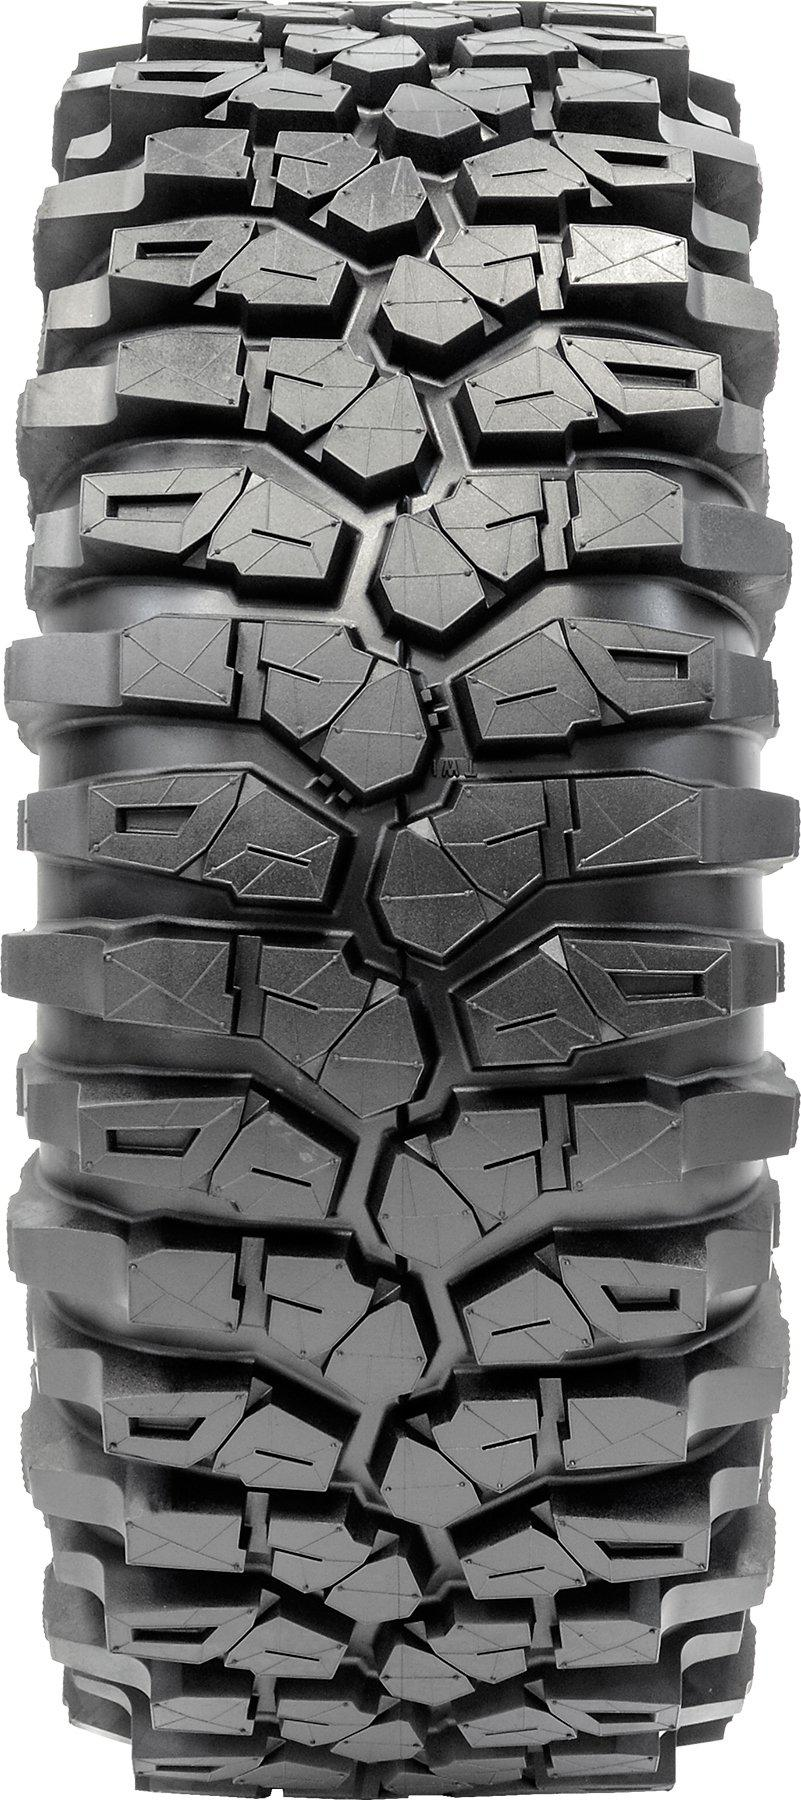 Maxxis Roxxzilla Radial Tire-Tires-Maxxis-30x10R14-Competition Compound-Black Market UTV